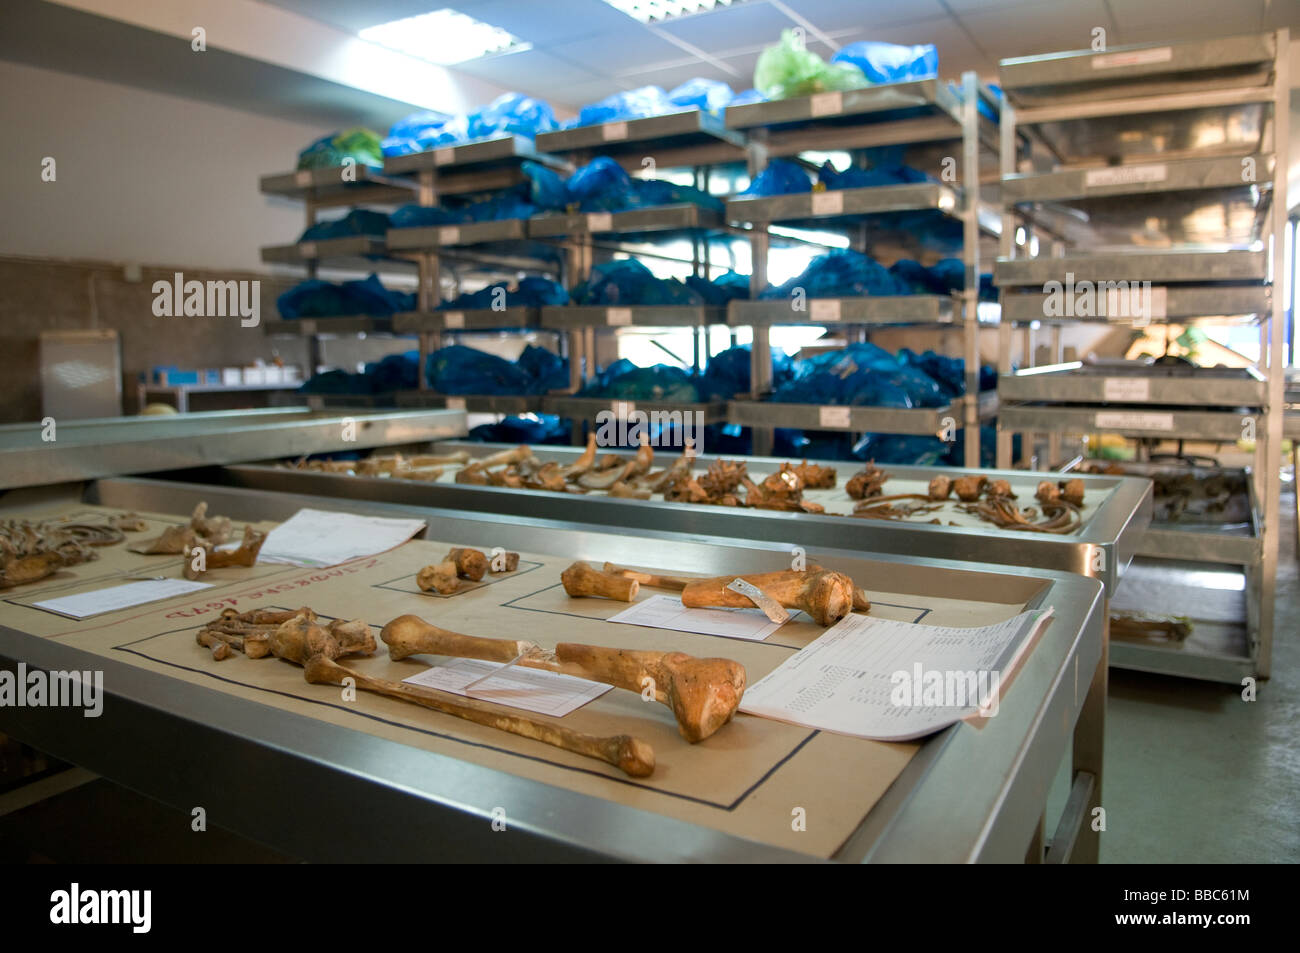 Human bones ready to be examined at the mortuary facility of ICMP commission of missing persons in the town of Tuzla - Stock Image